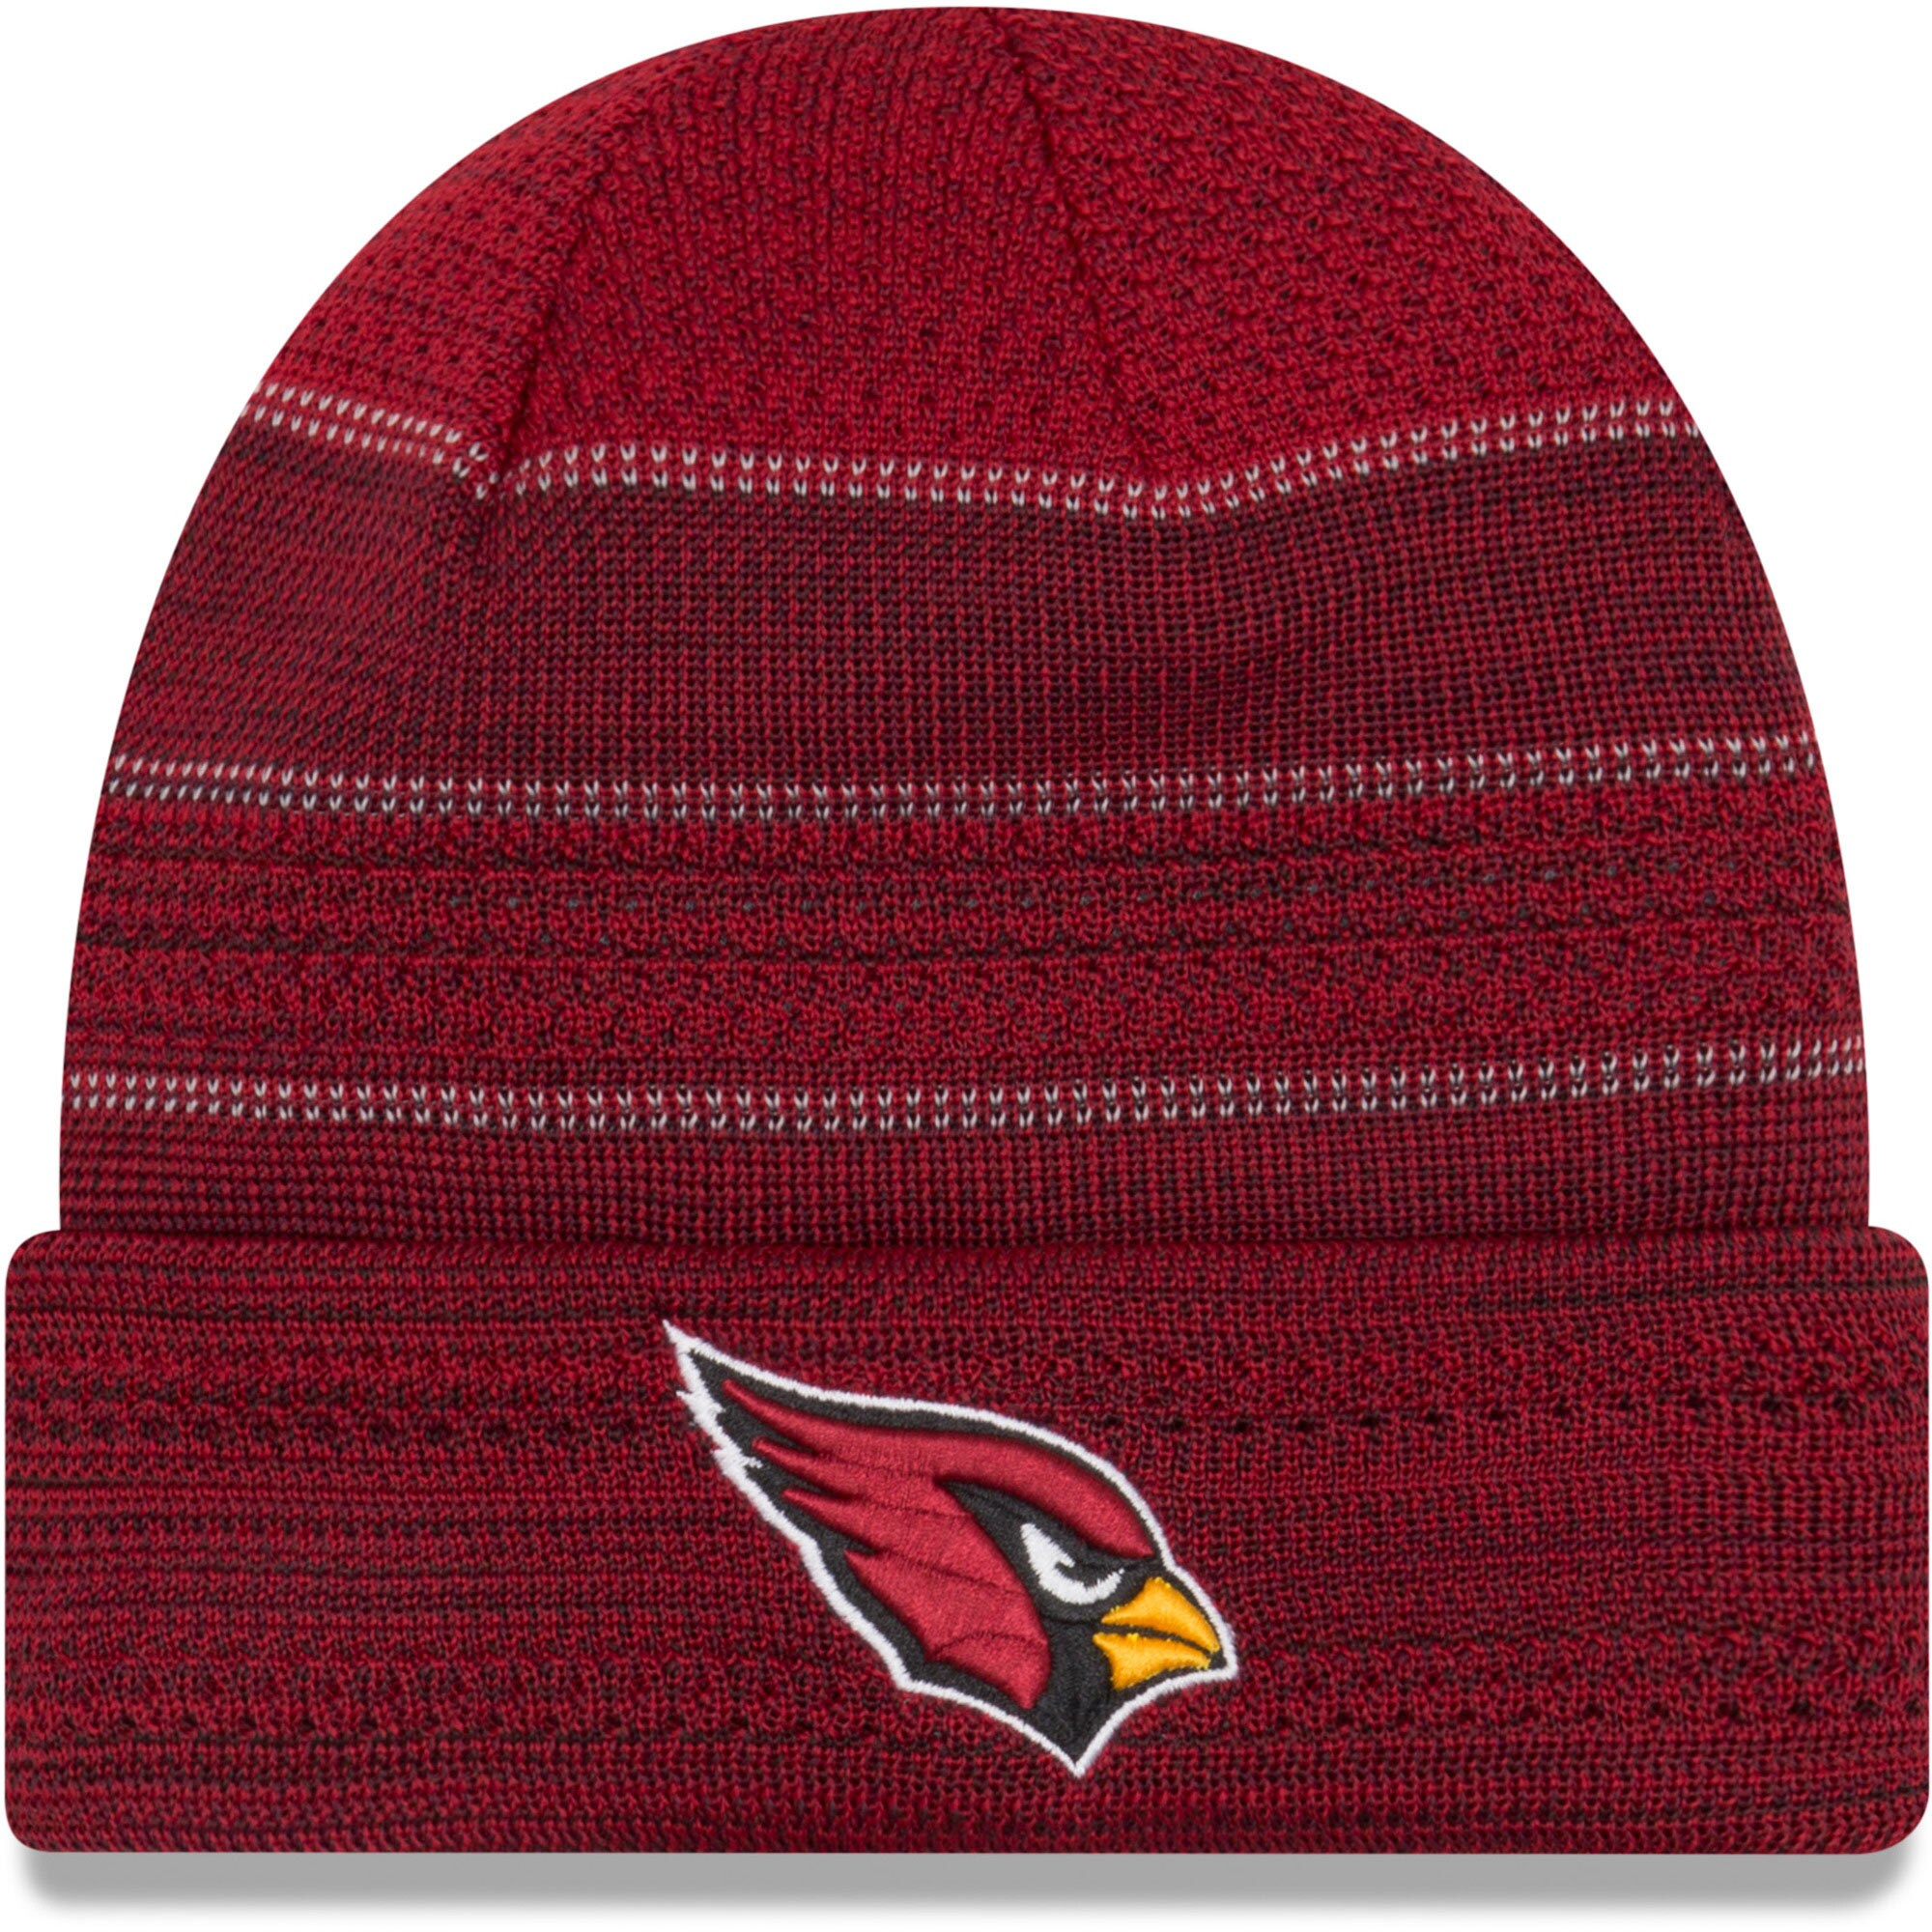 Arizona Cardinals New Era 2017 Sideline Official TD Knit Hat - Cardinal